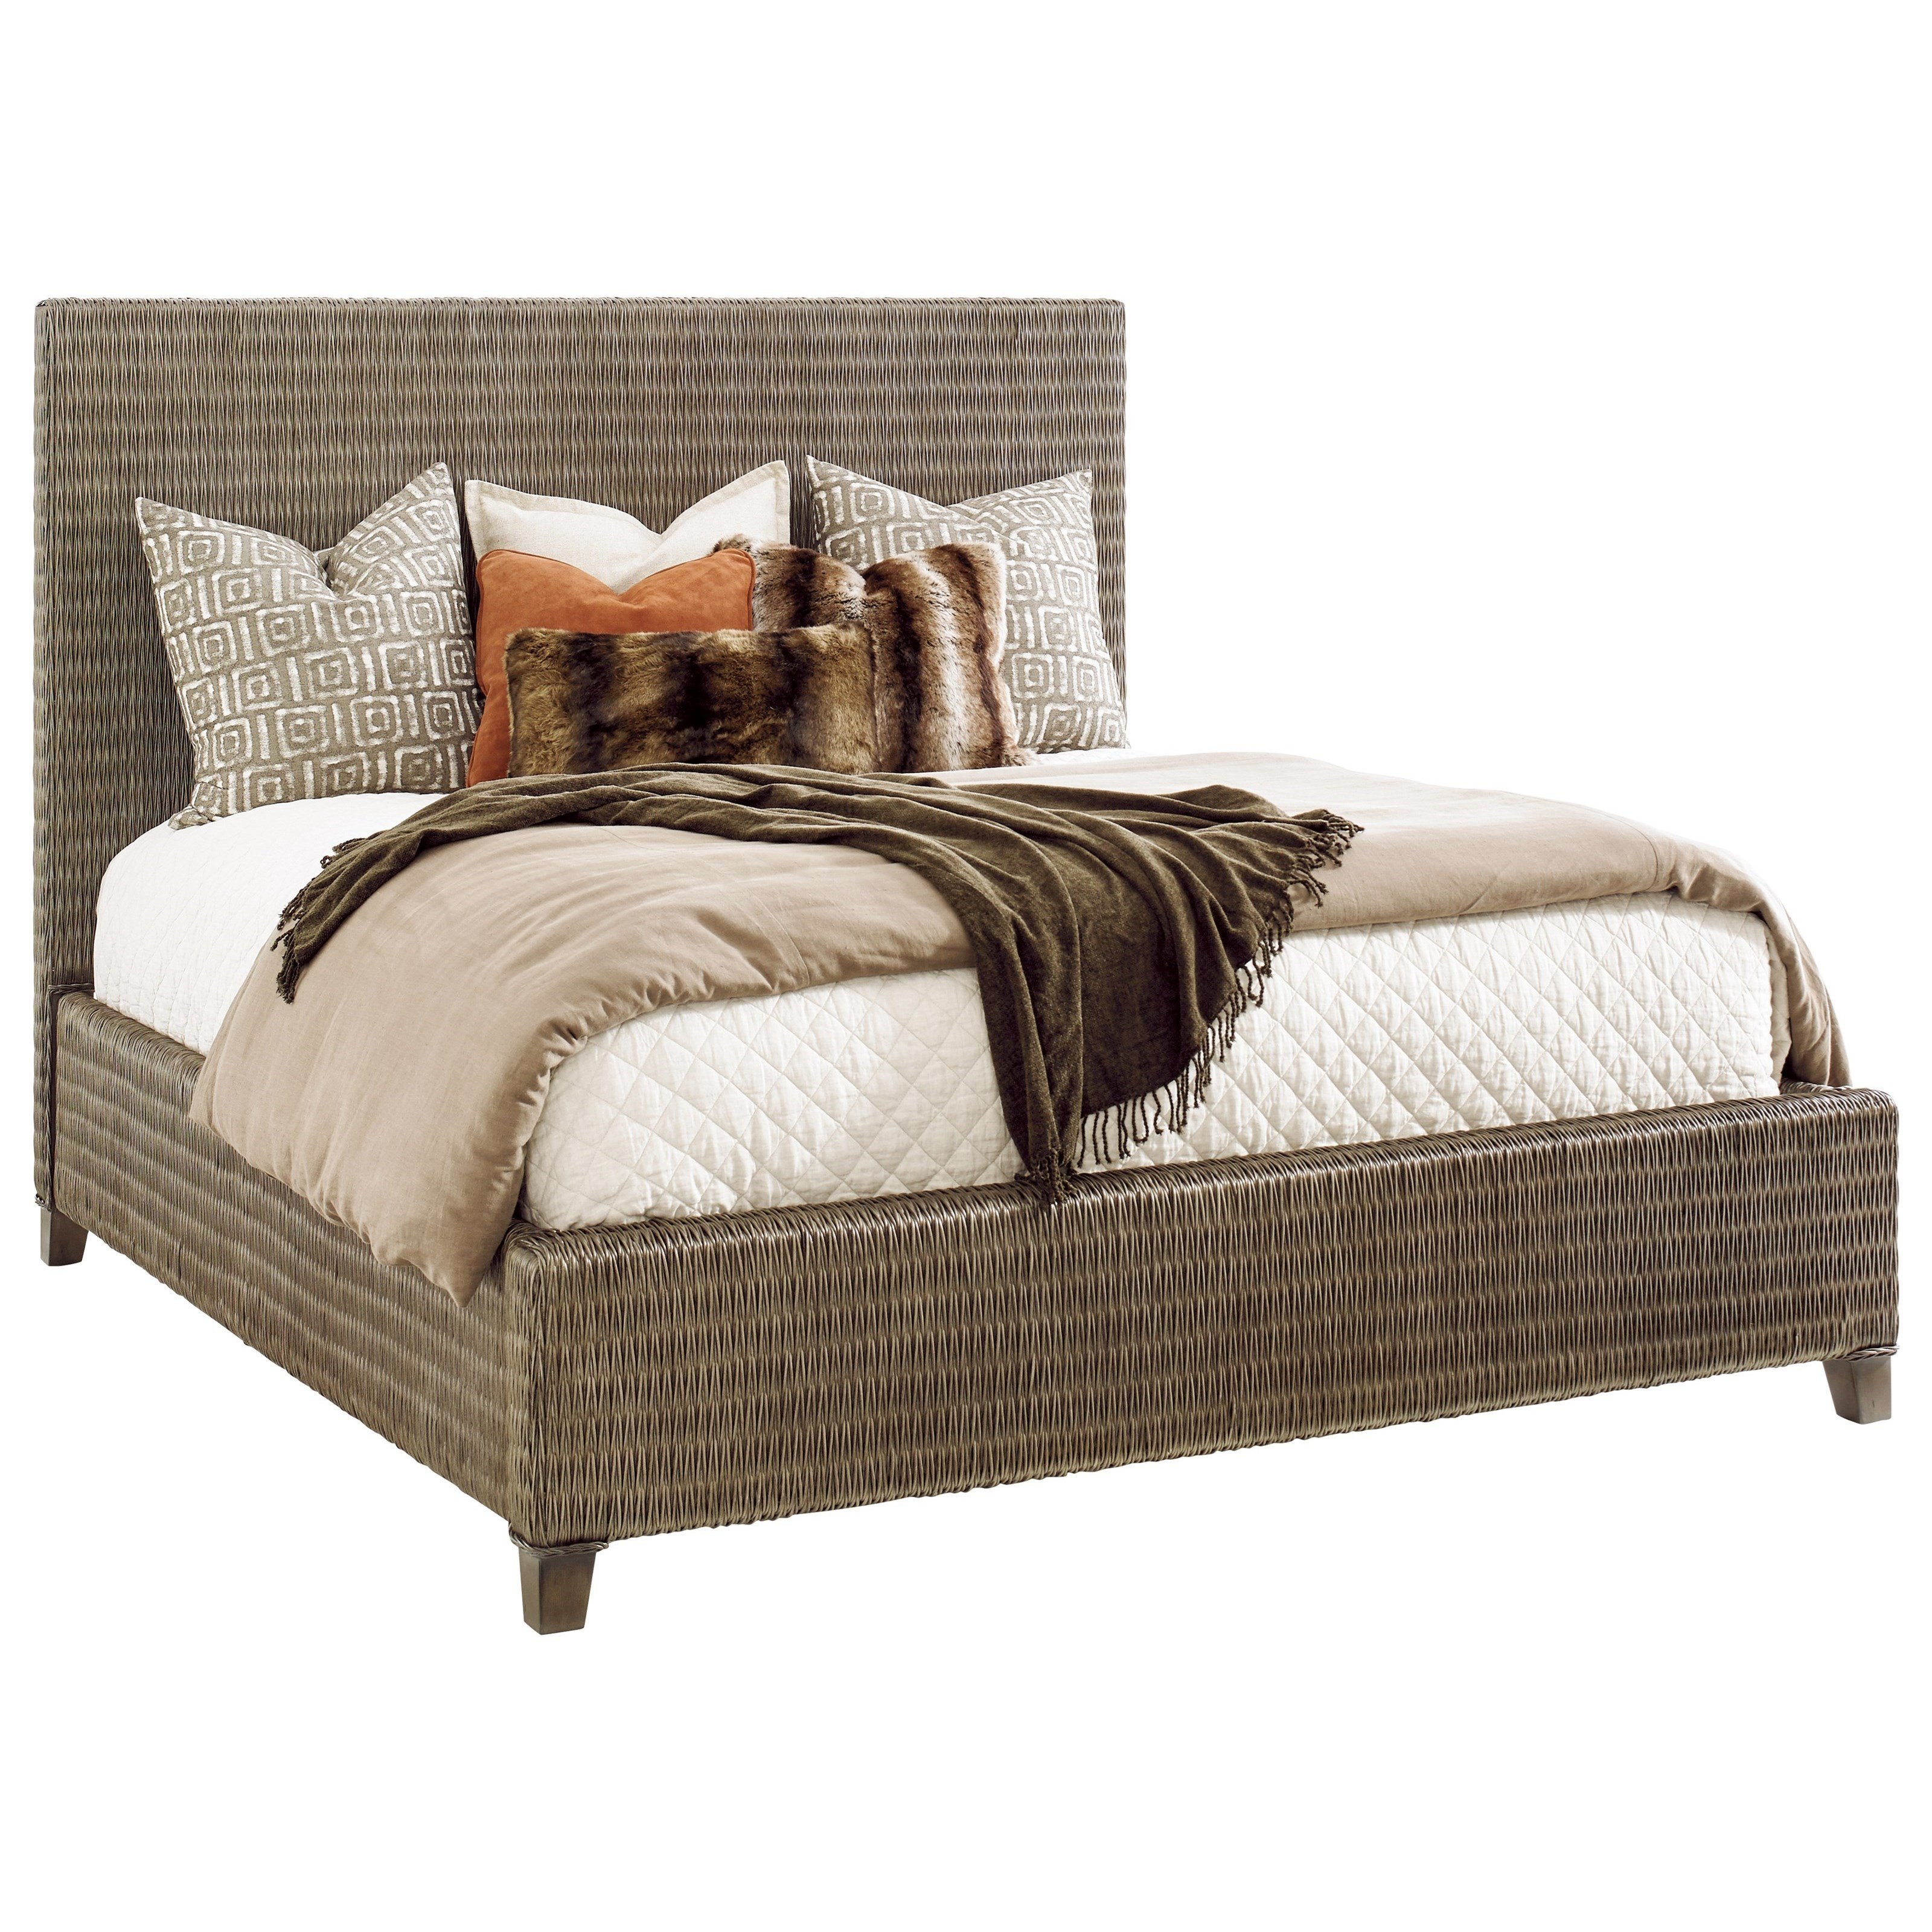 California King Bedroom Set Clearance Fresh tommy Bahama Home Cypress Point 562 134c Driftwood isle